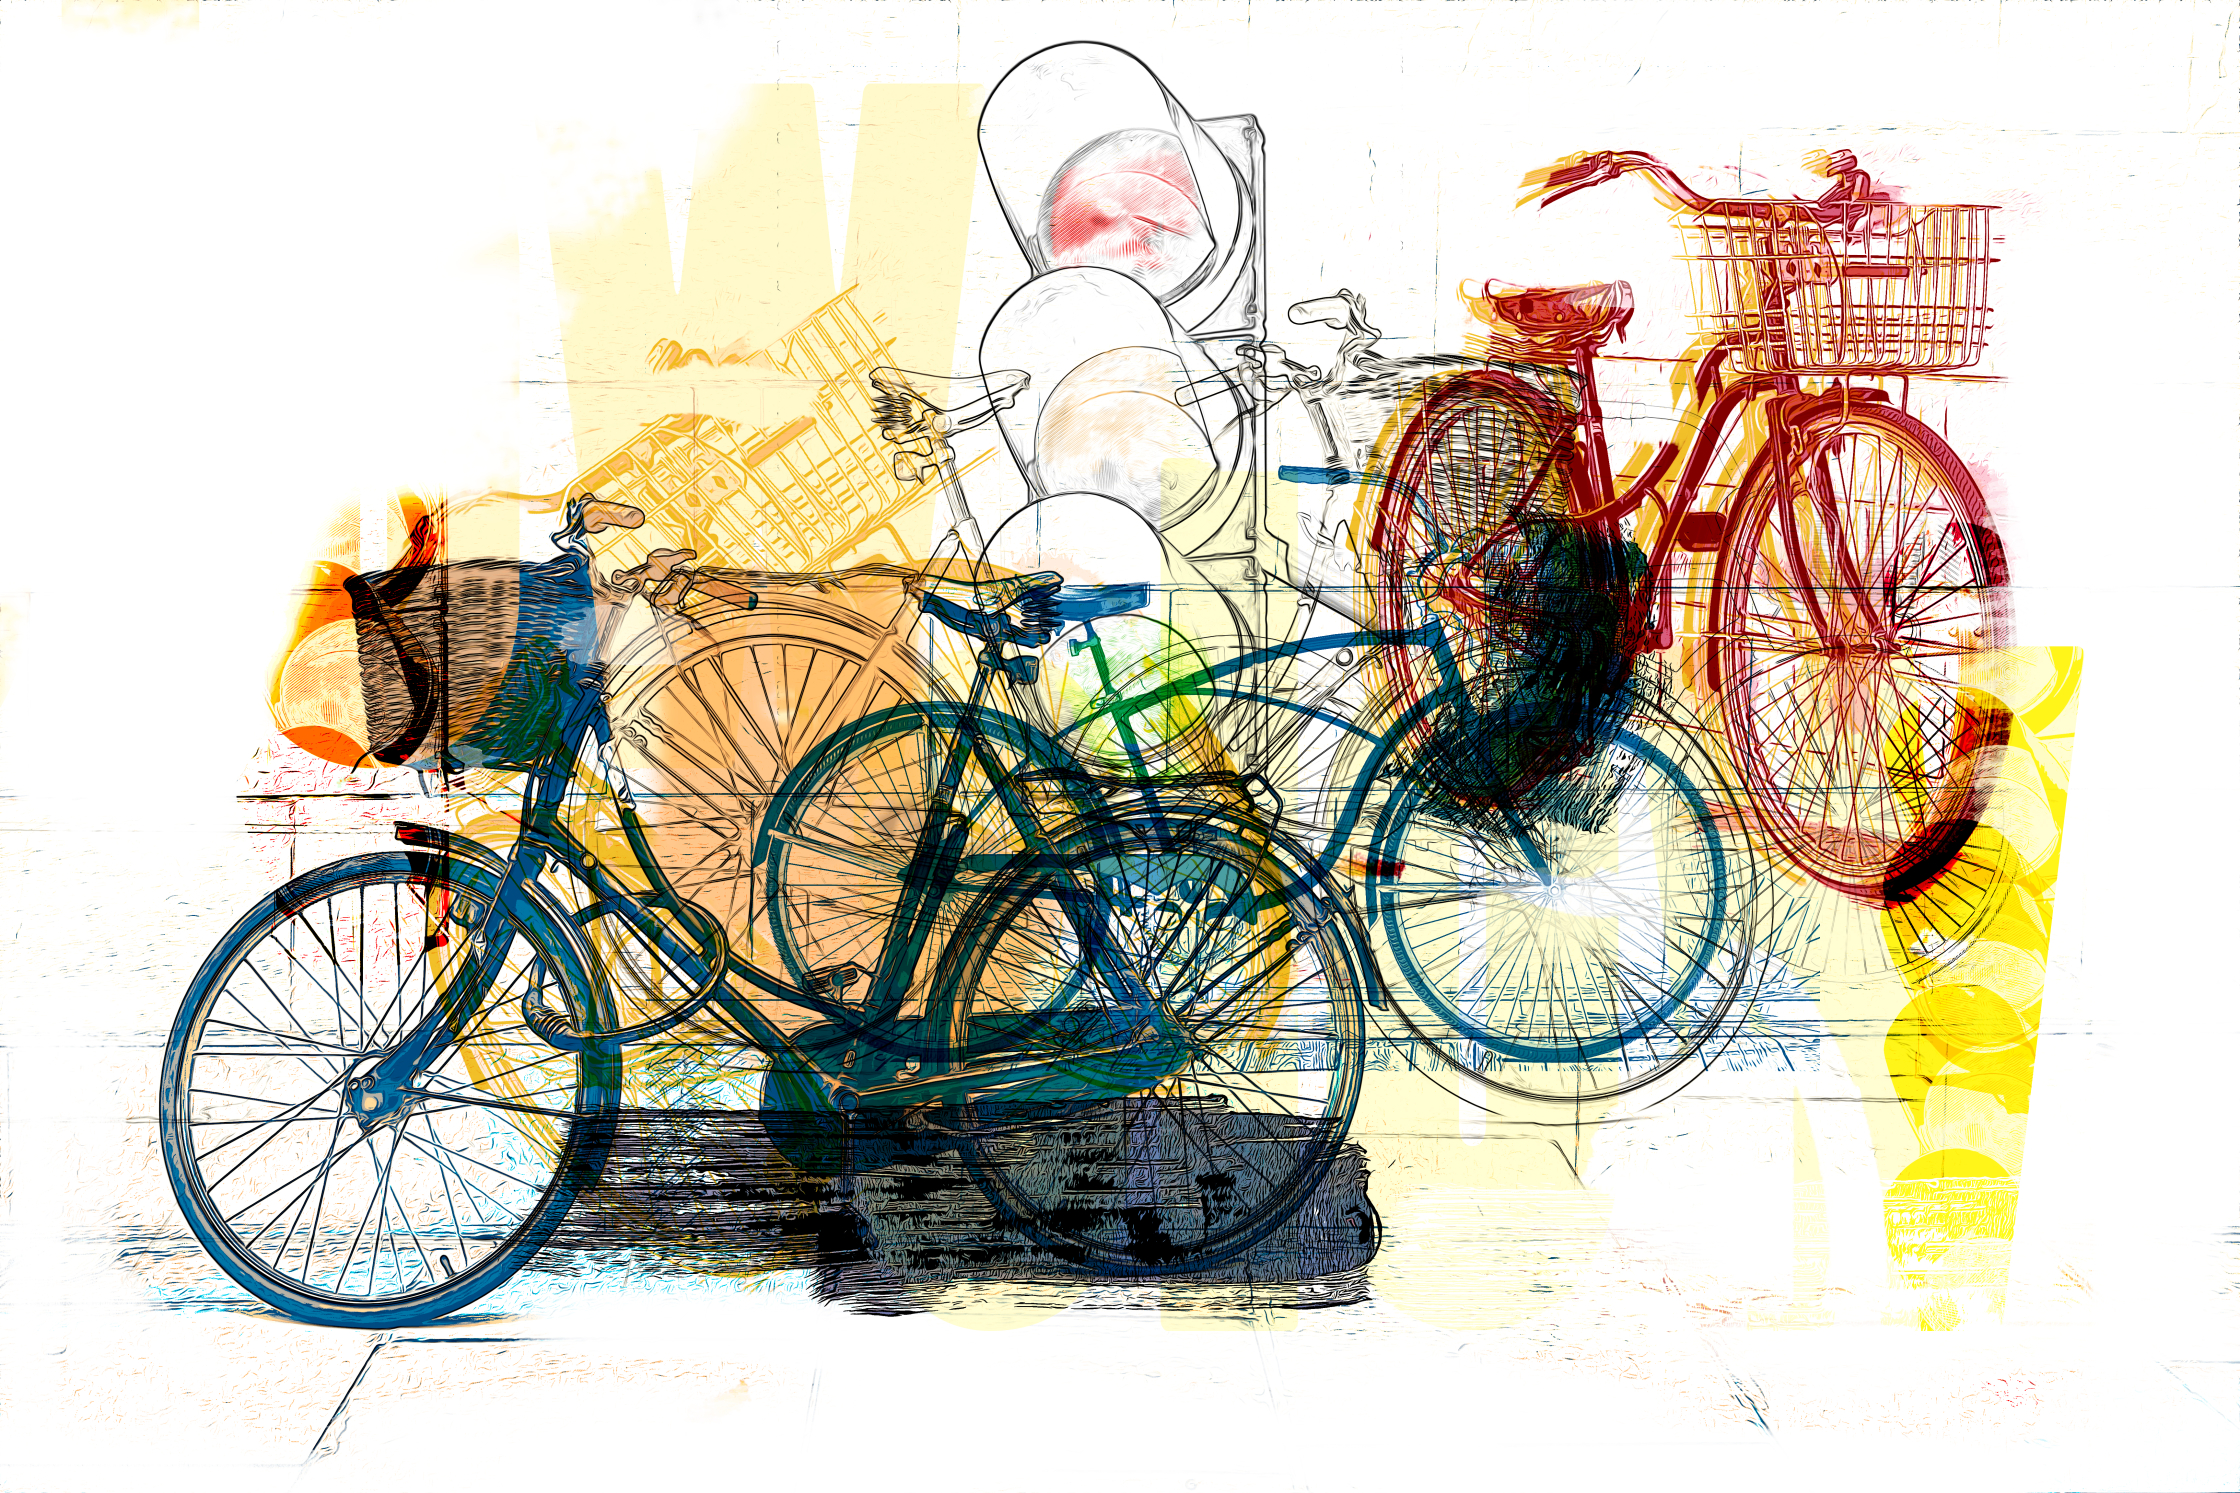 Europe and bikes editorial illustration .jpg